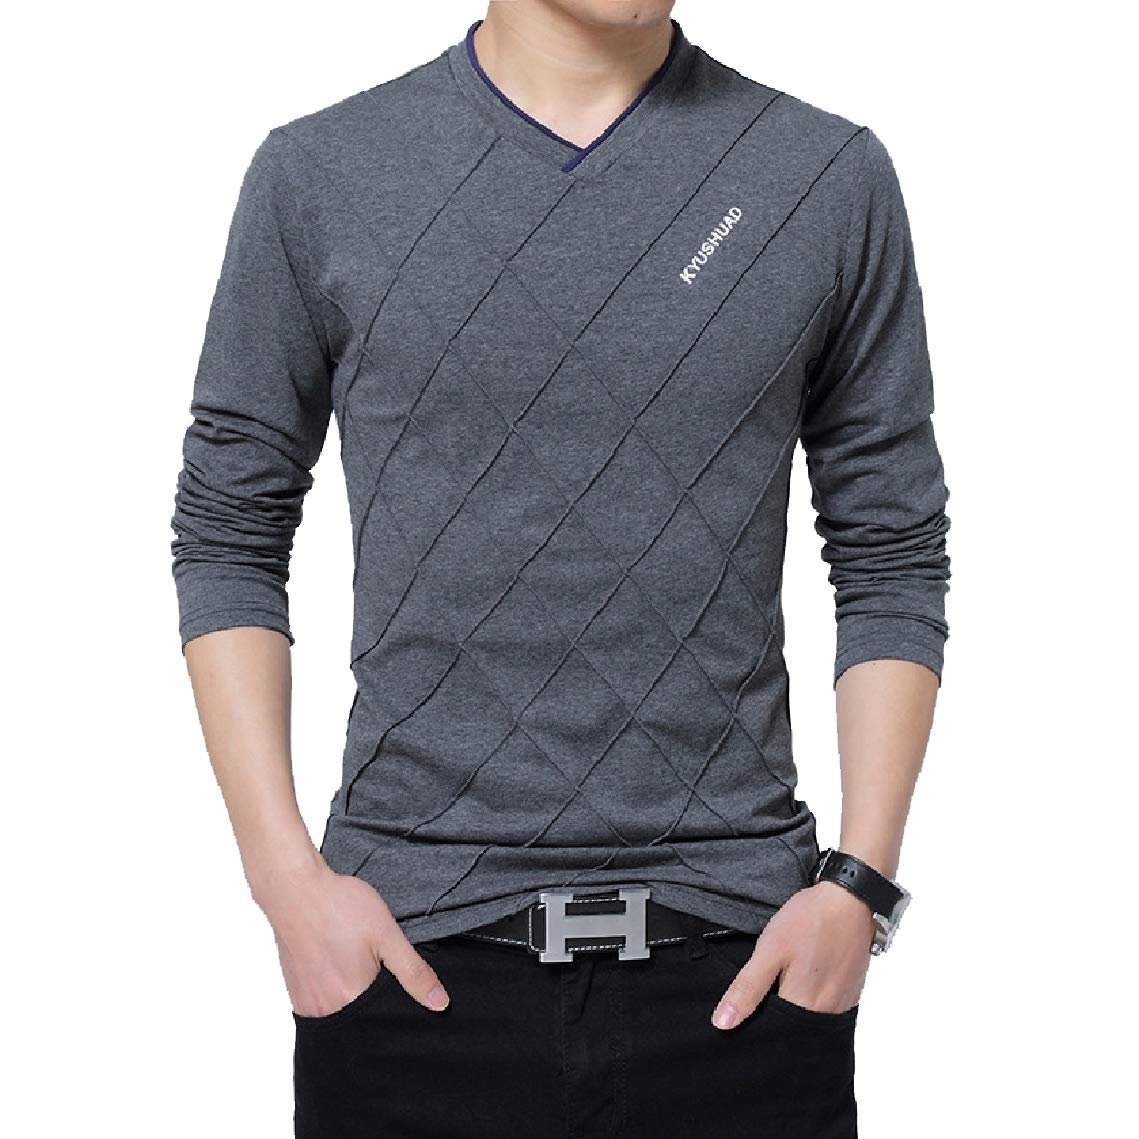 Freely Mens Long Sleeves Printing Solid-Colored Over Sized V Neck Tee Tshirt